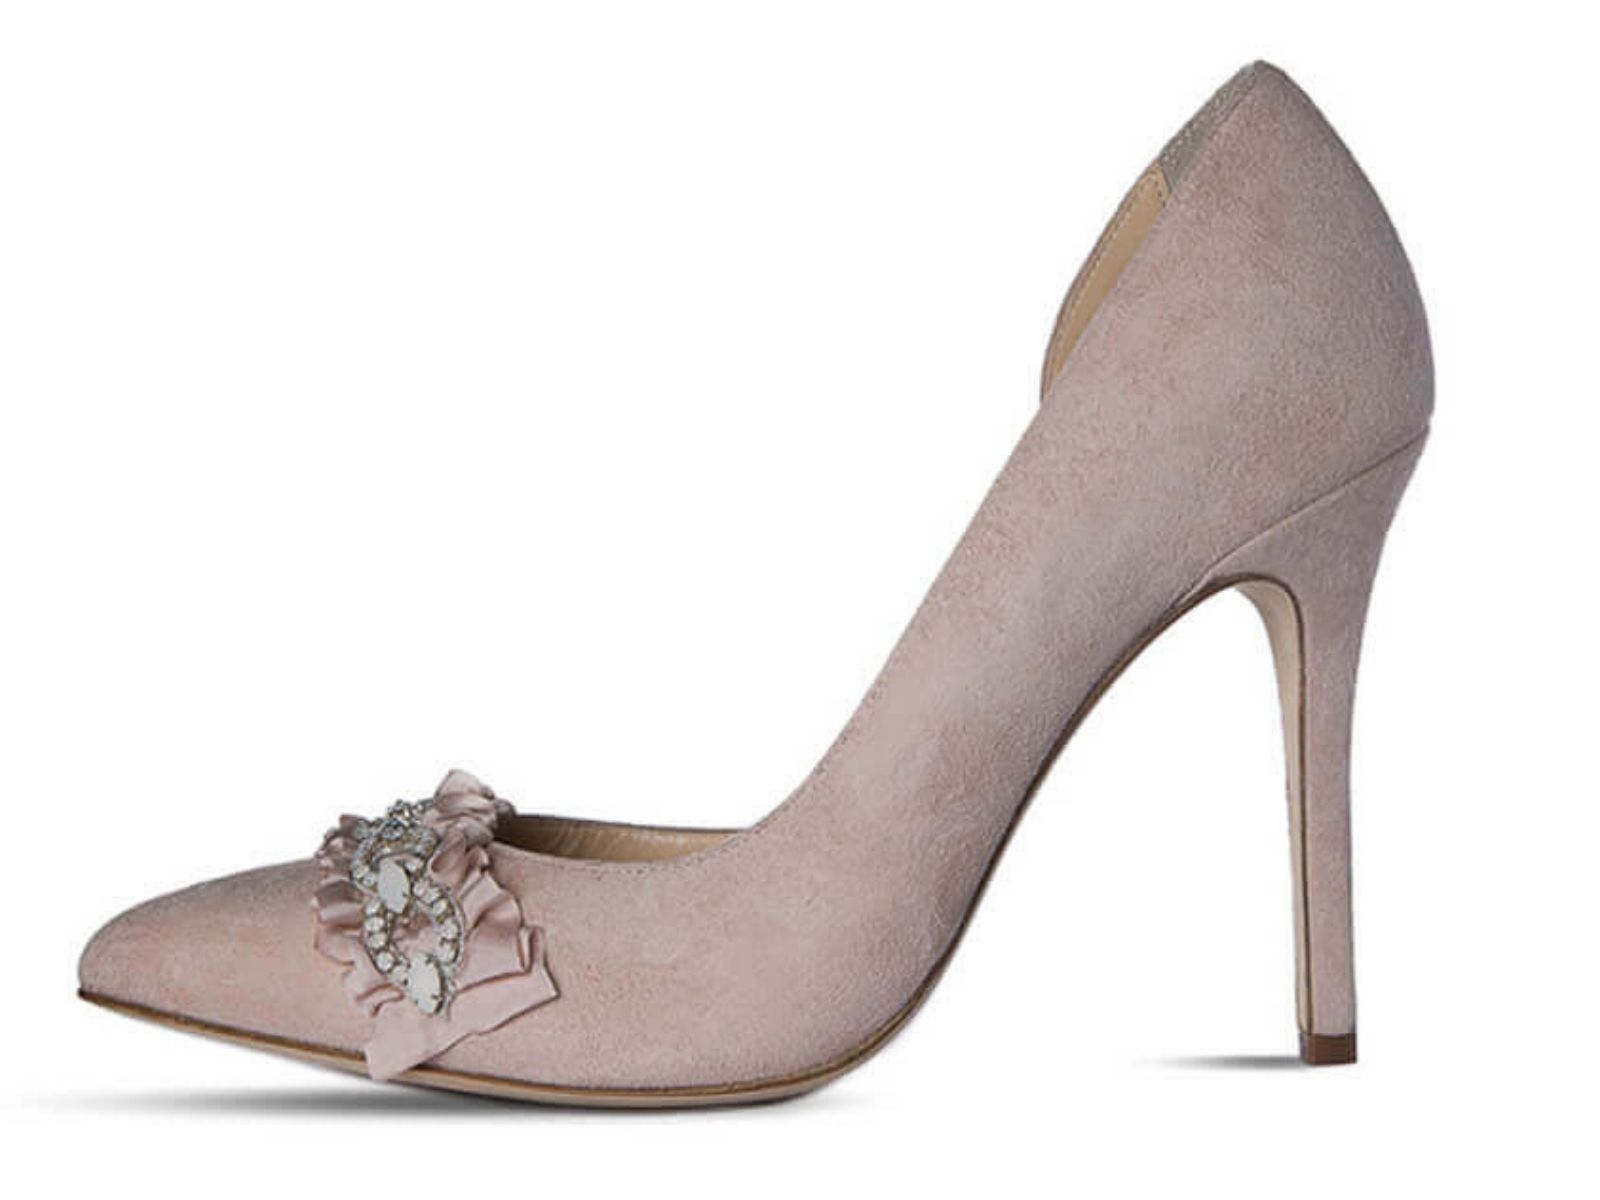 China doll wedding shoes Bridal Indulgence